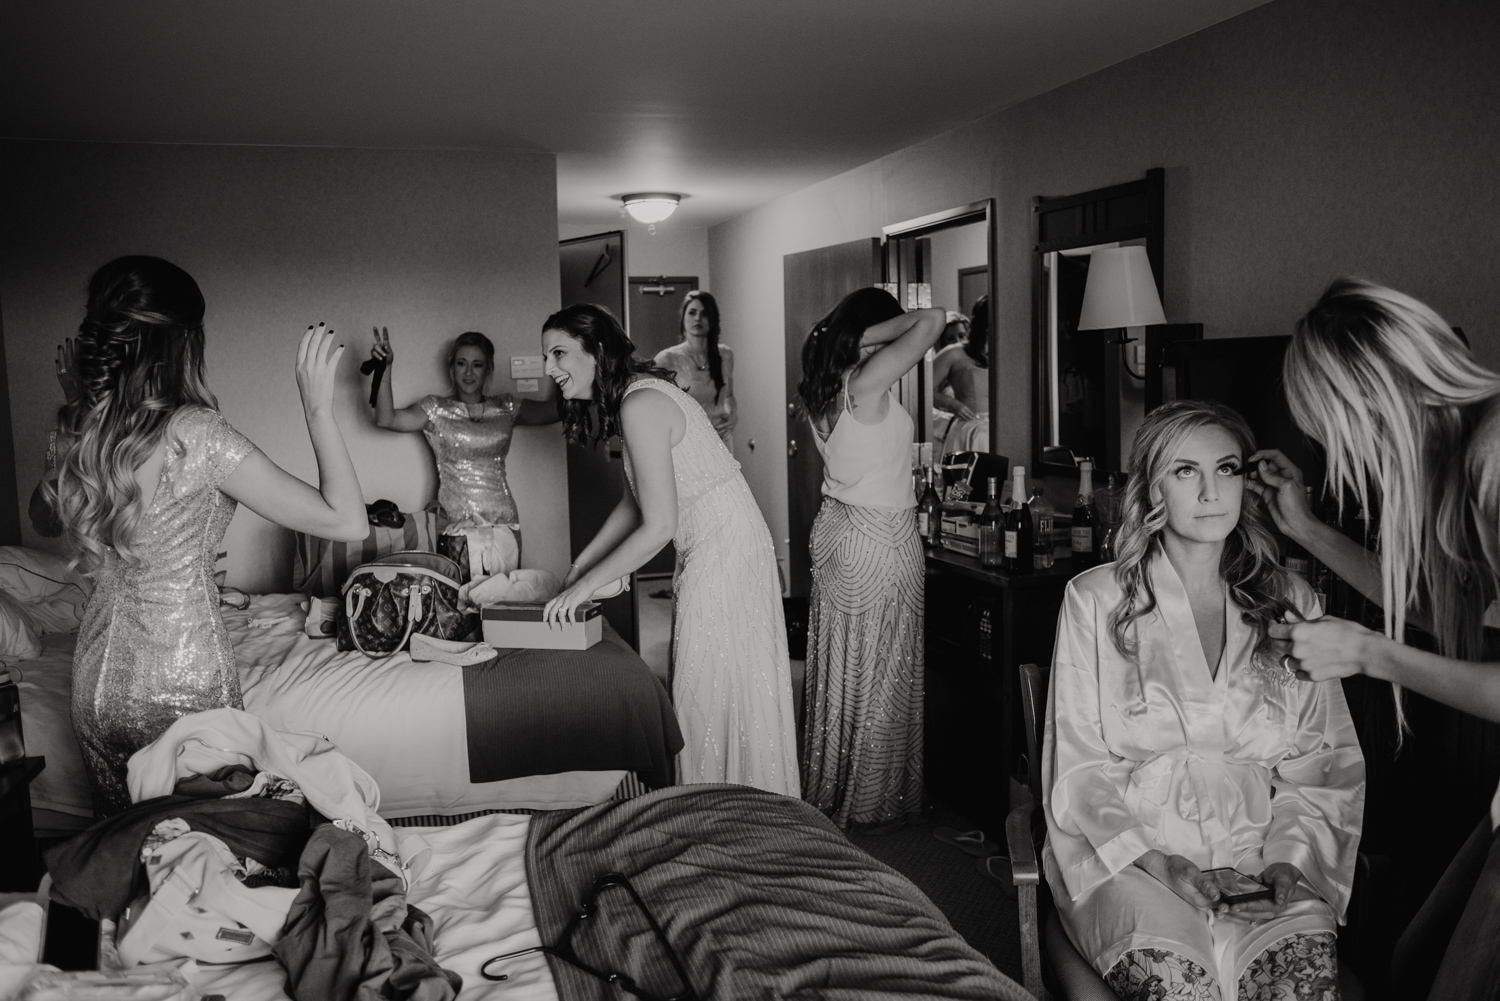 The getting ready room of the bride documented on a wedding day.